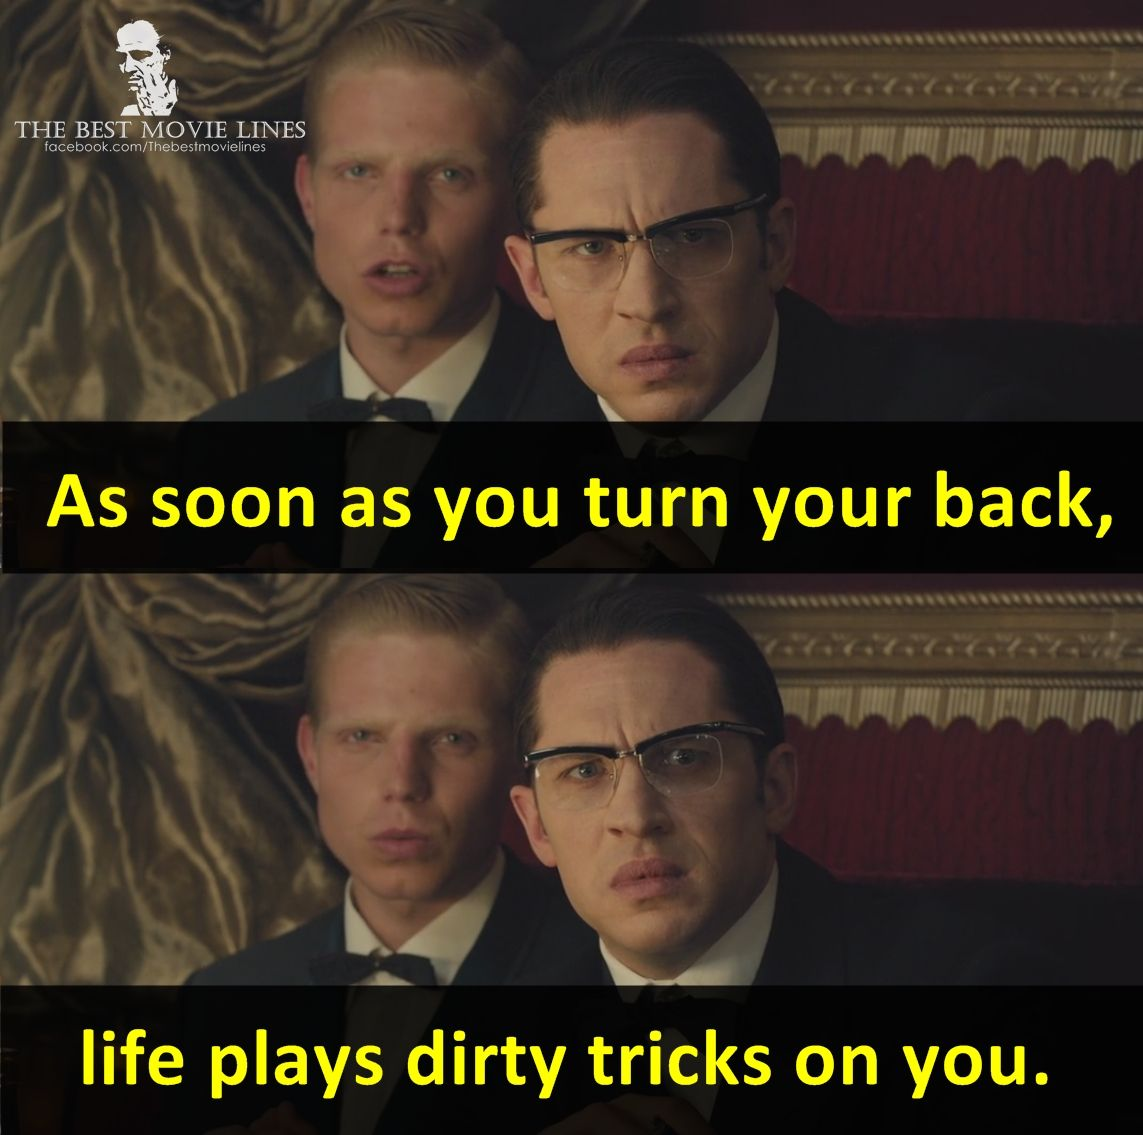 Tom Hardy In Legend 2015 Tom Hardy Quotes Best Movie Lines Tom Hardy Legend